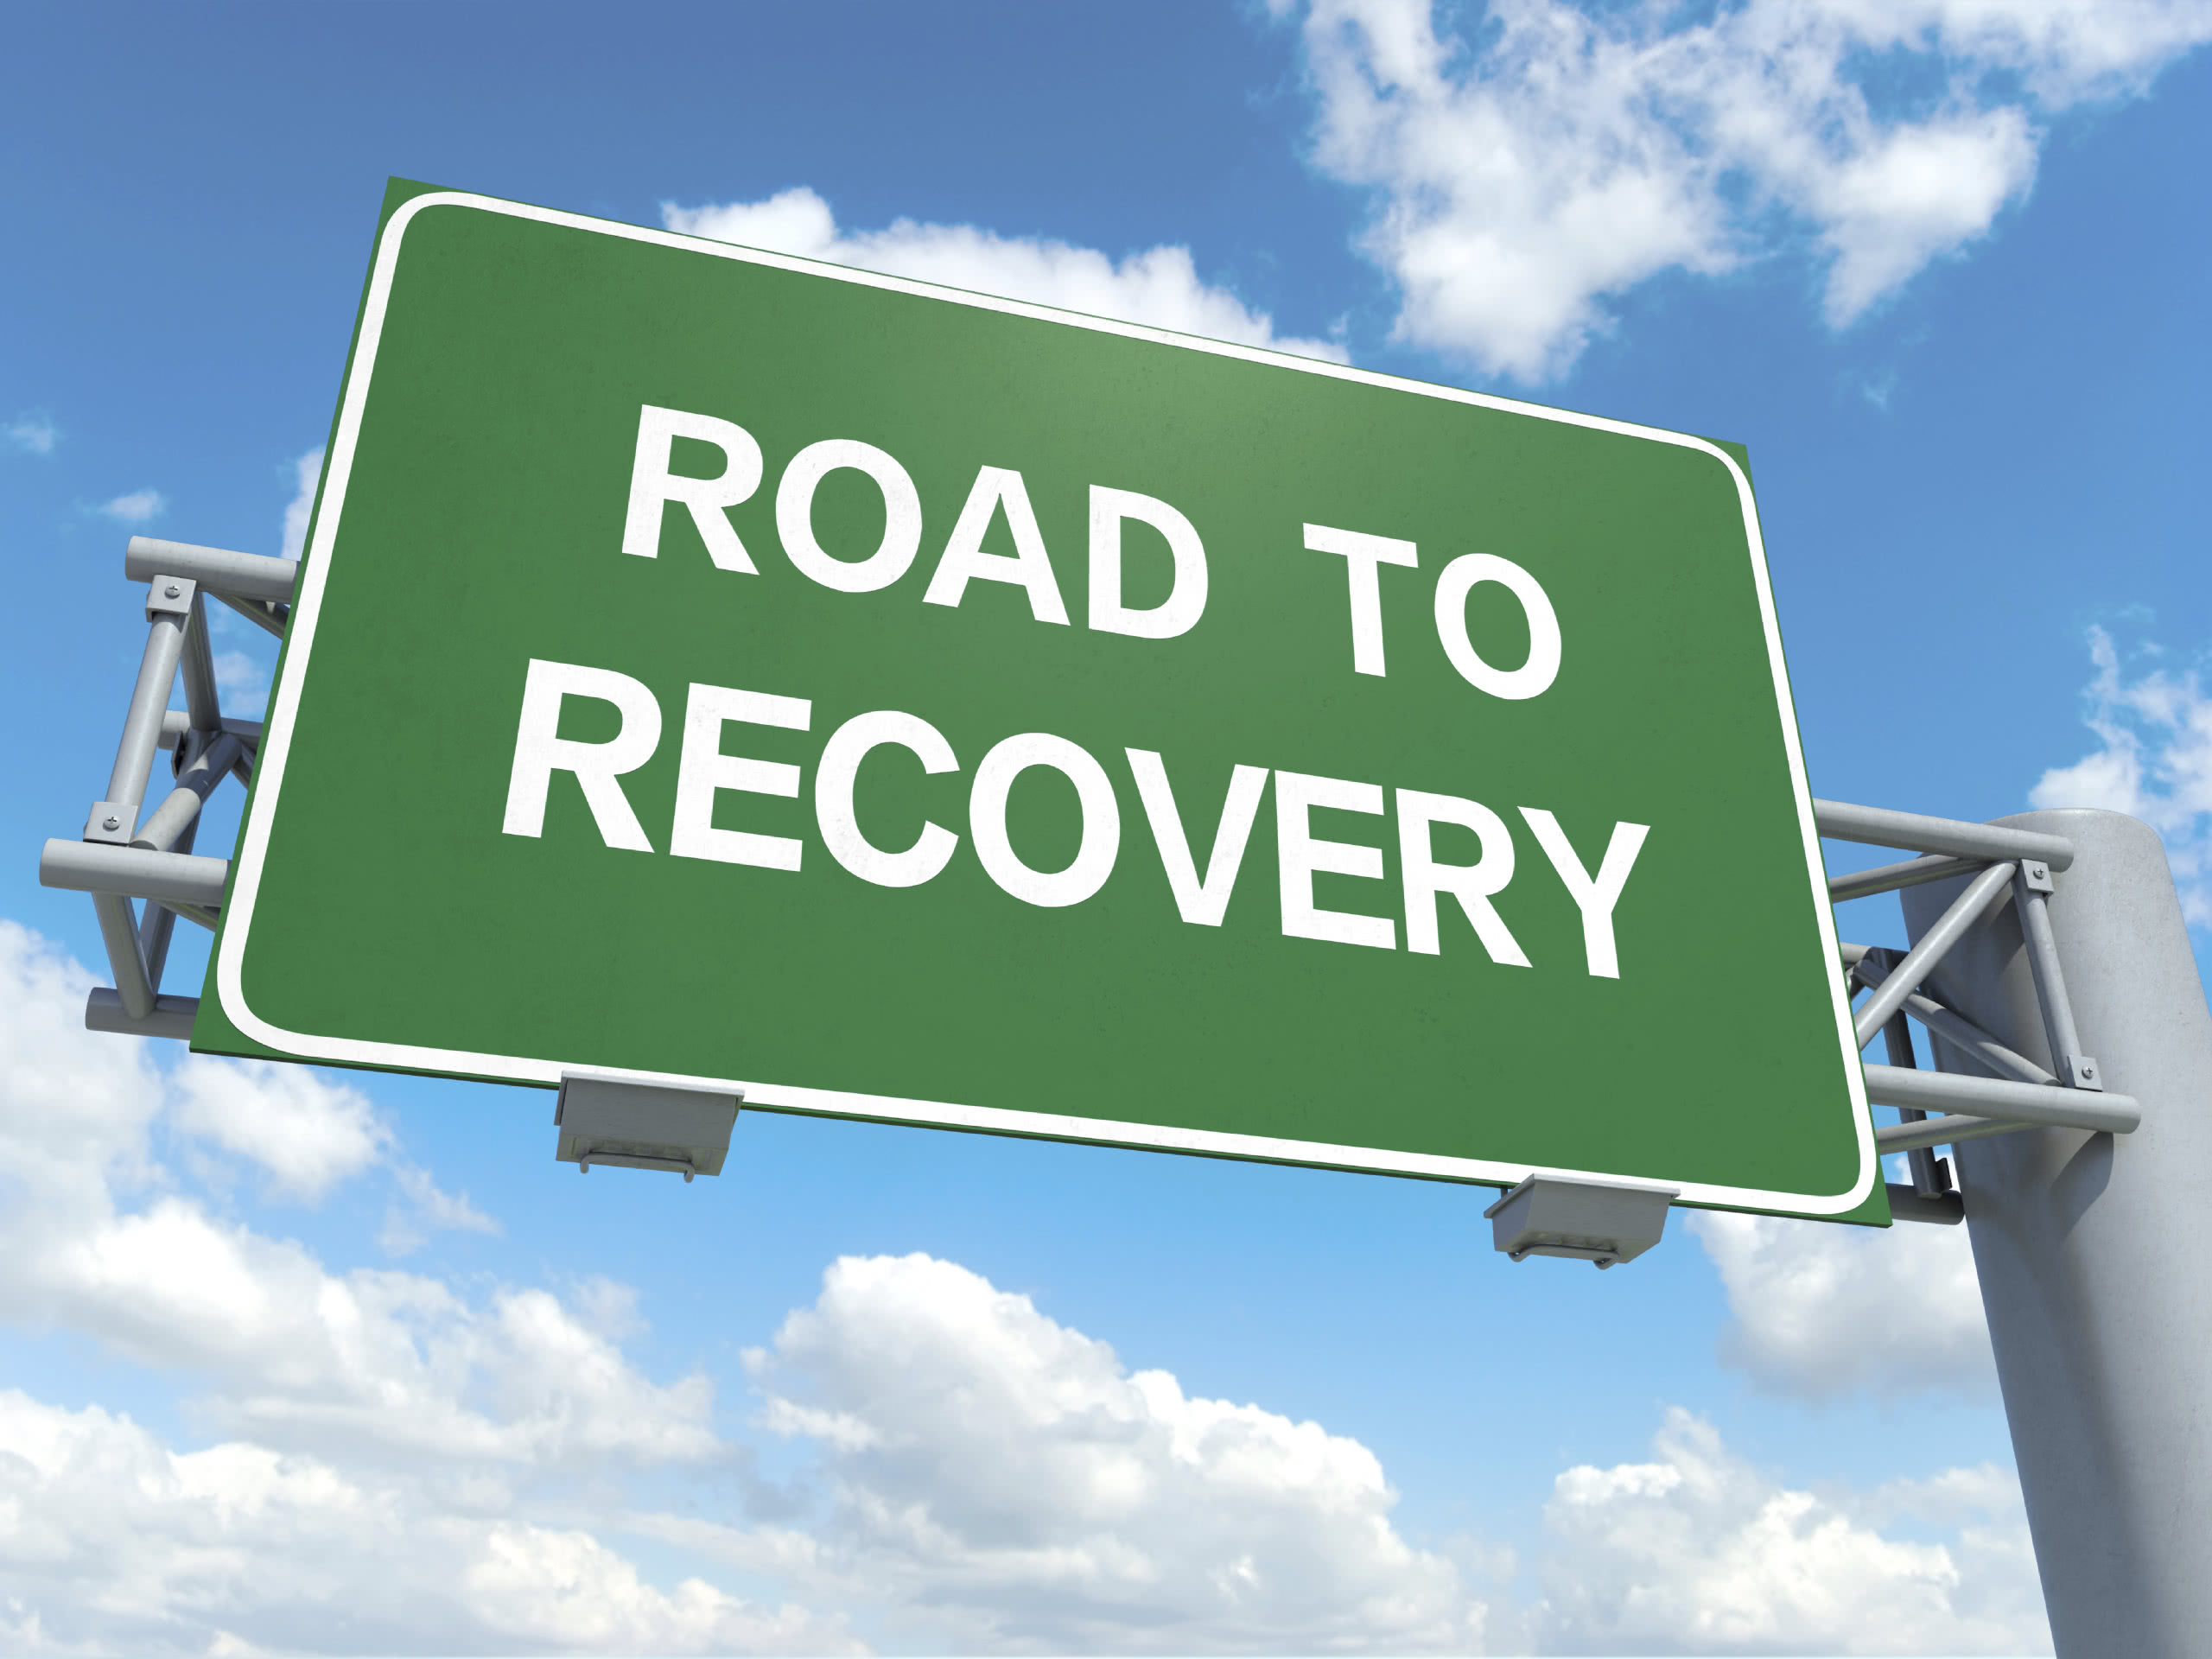 Roads to recovery from gambling addiction casino kingston ontario